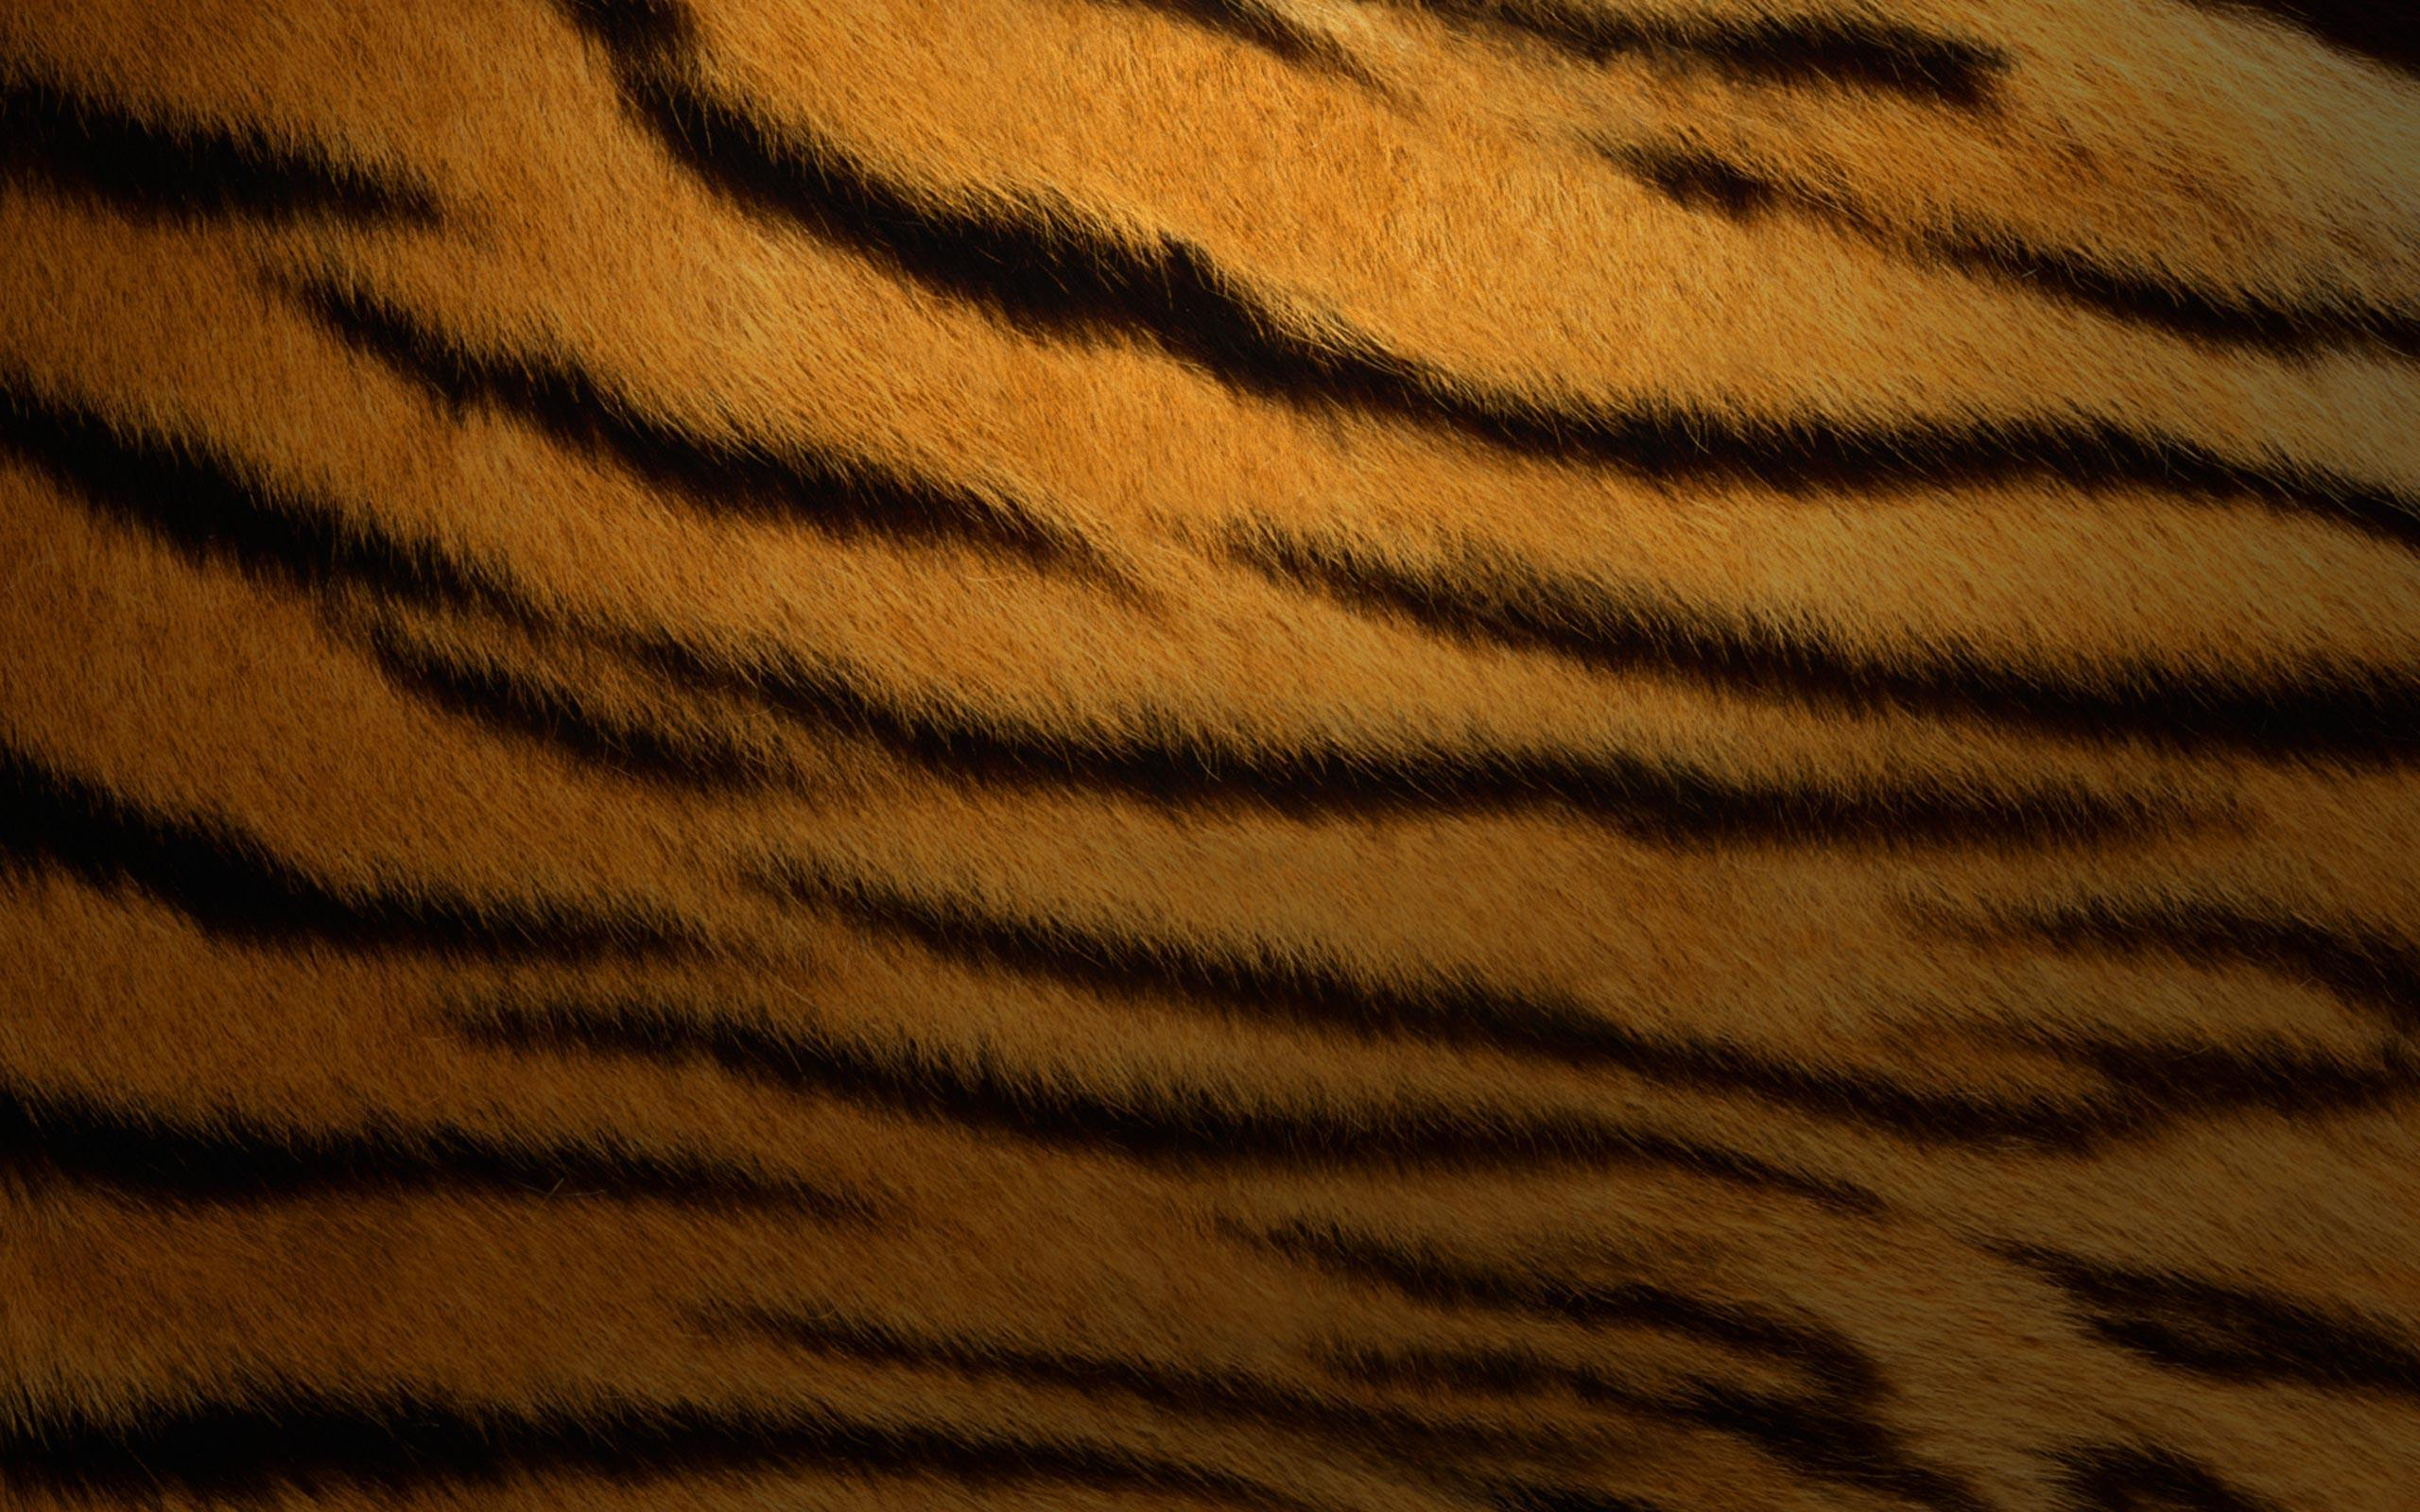 Mac Os X Tiger Wallpapers 21779 Wallpapers